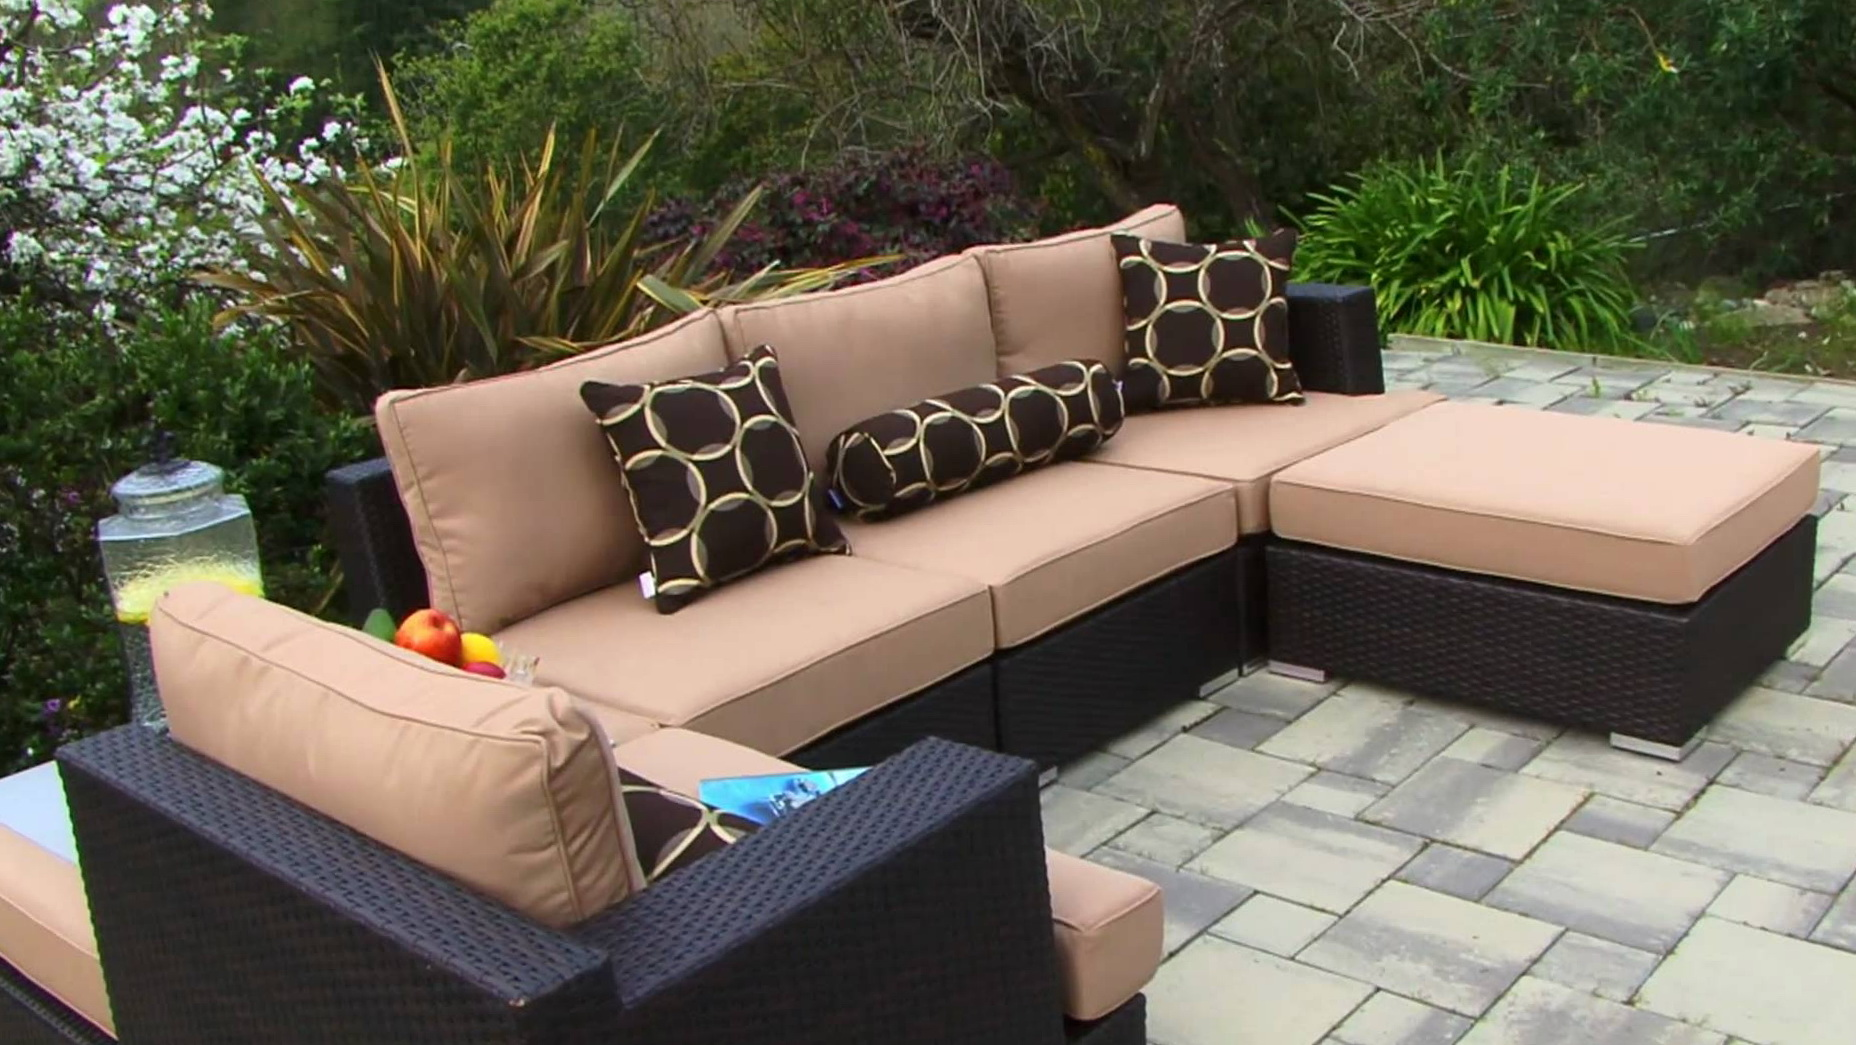 Home Depot Deck Furniture Clearance Home Design Ideas